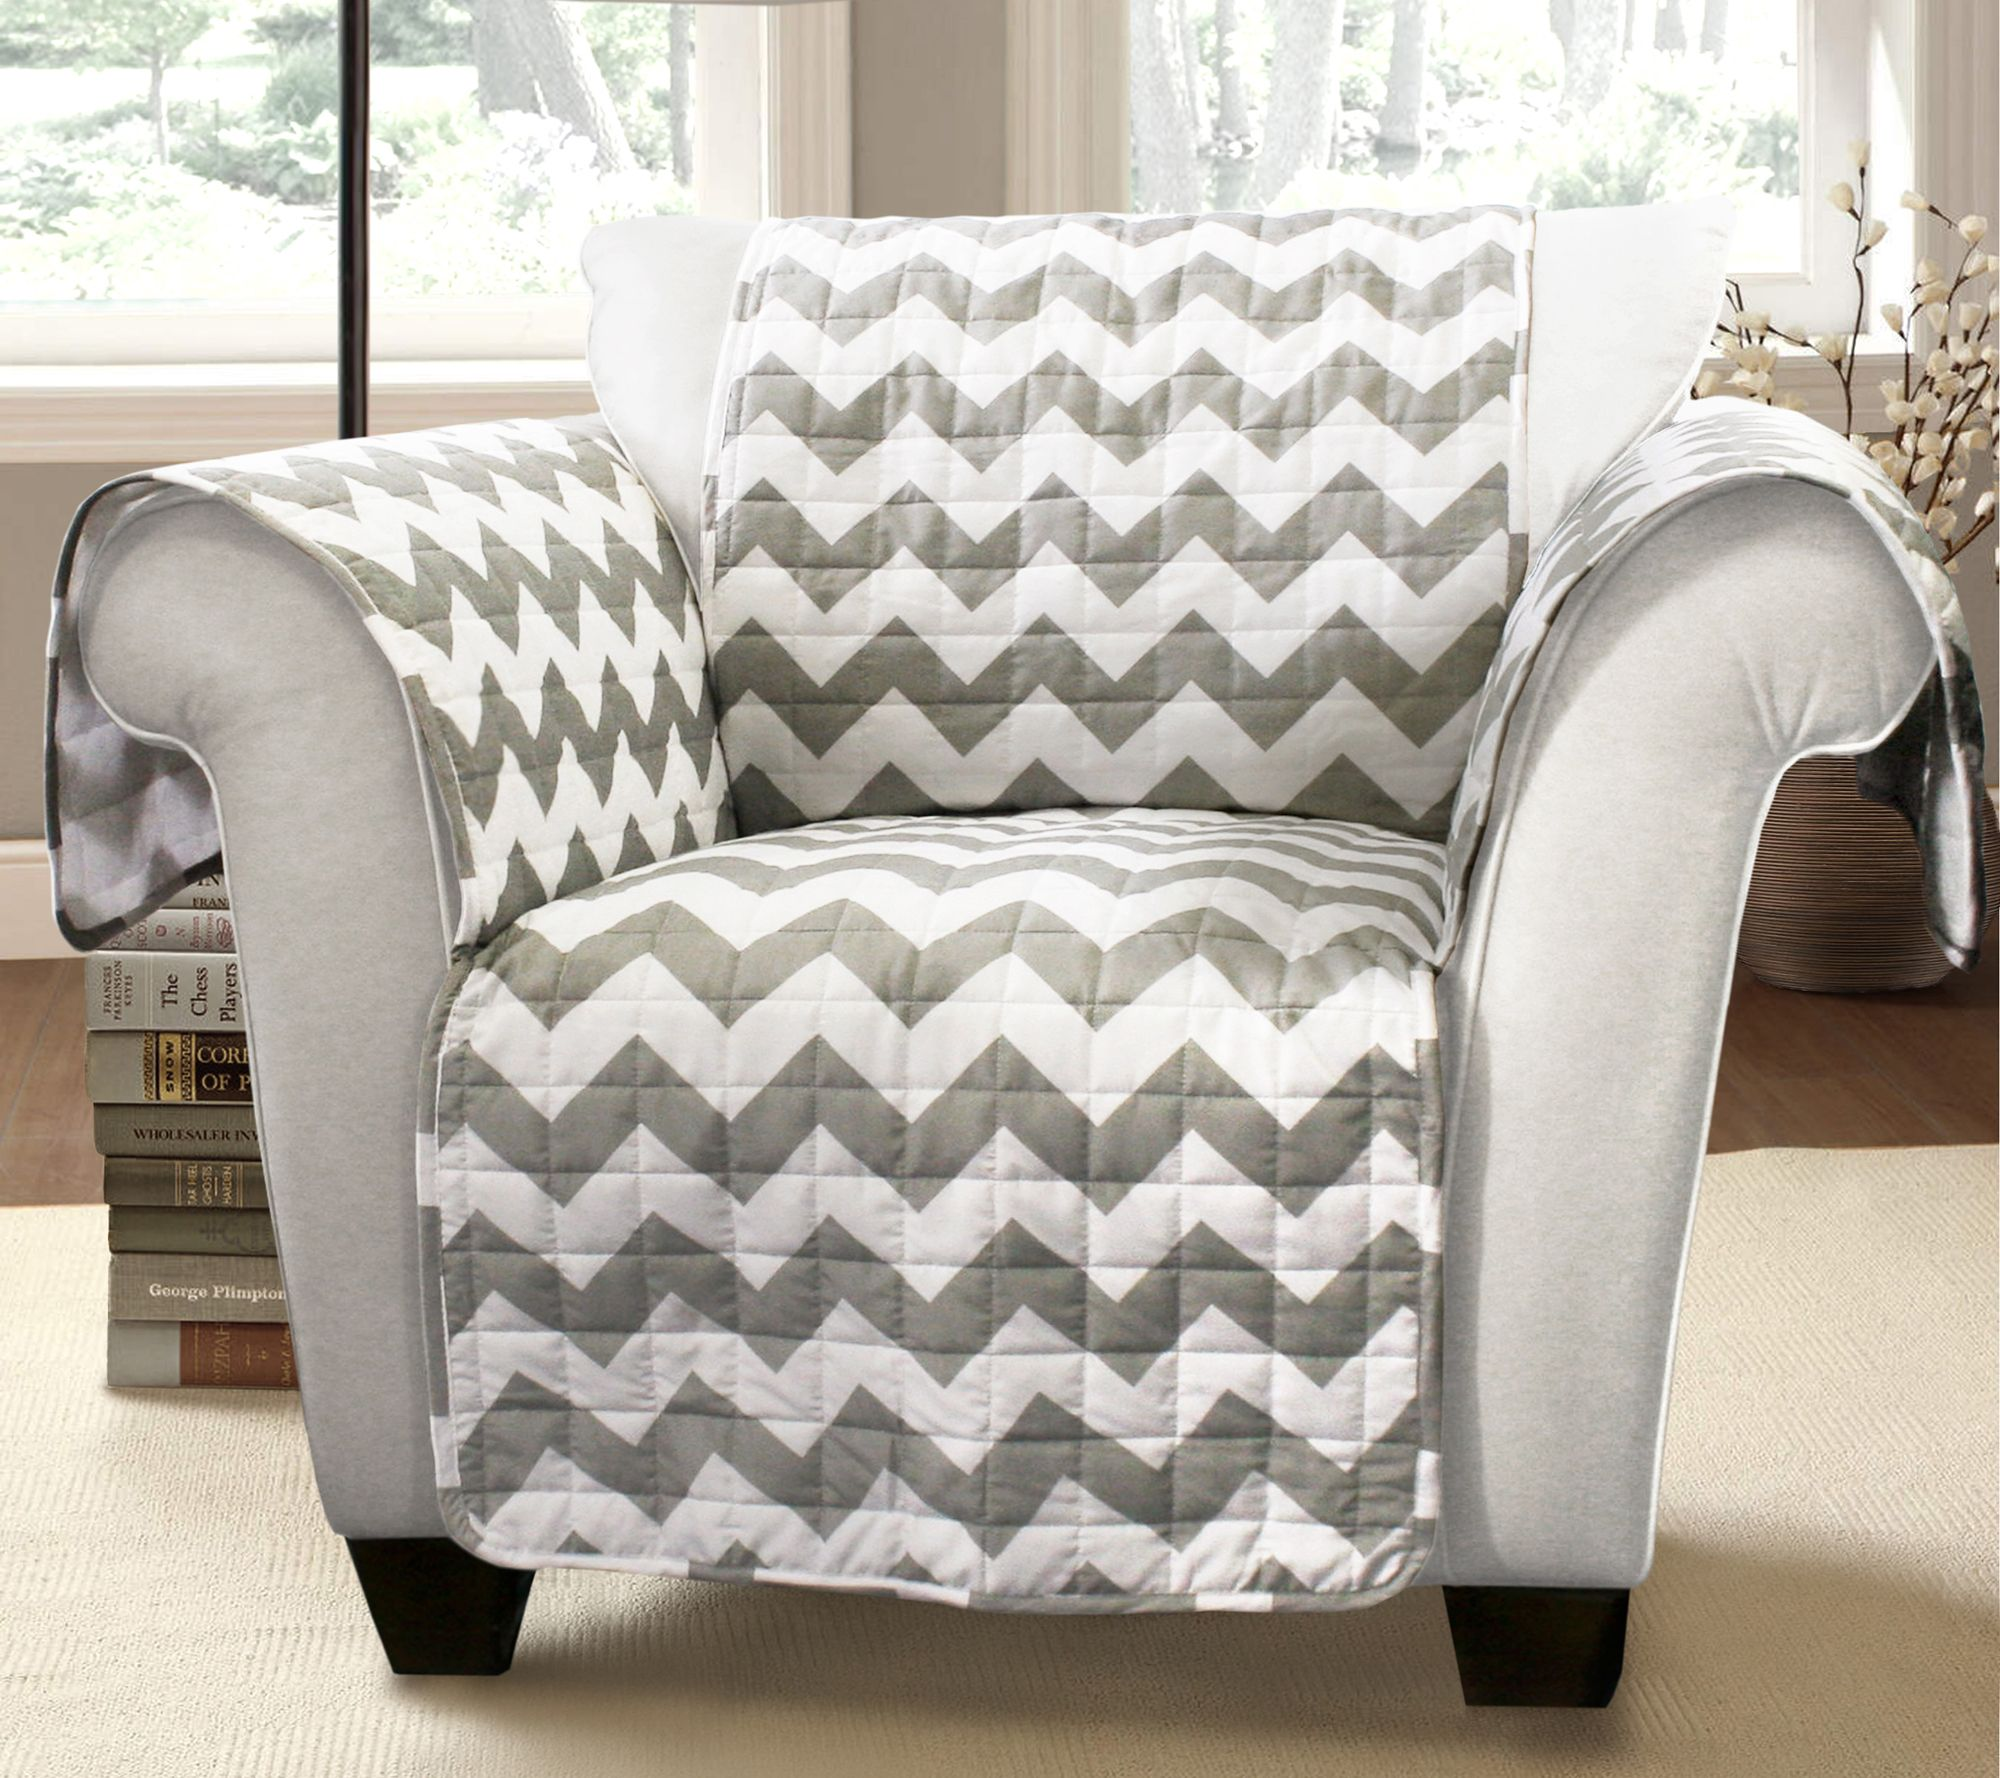 Parsons Dining Room Chairs Clearance | Printed Dining Room Chairs | Chevron Chair